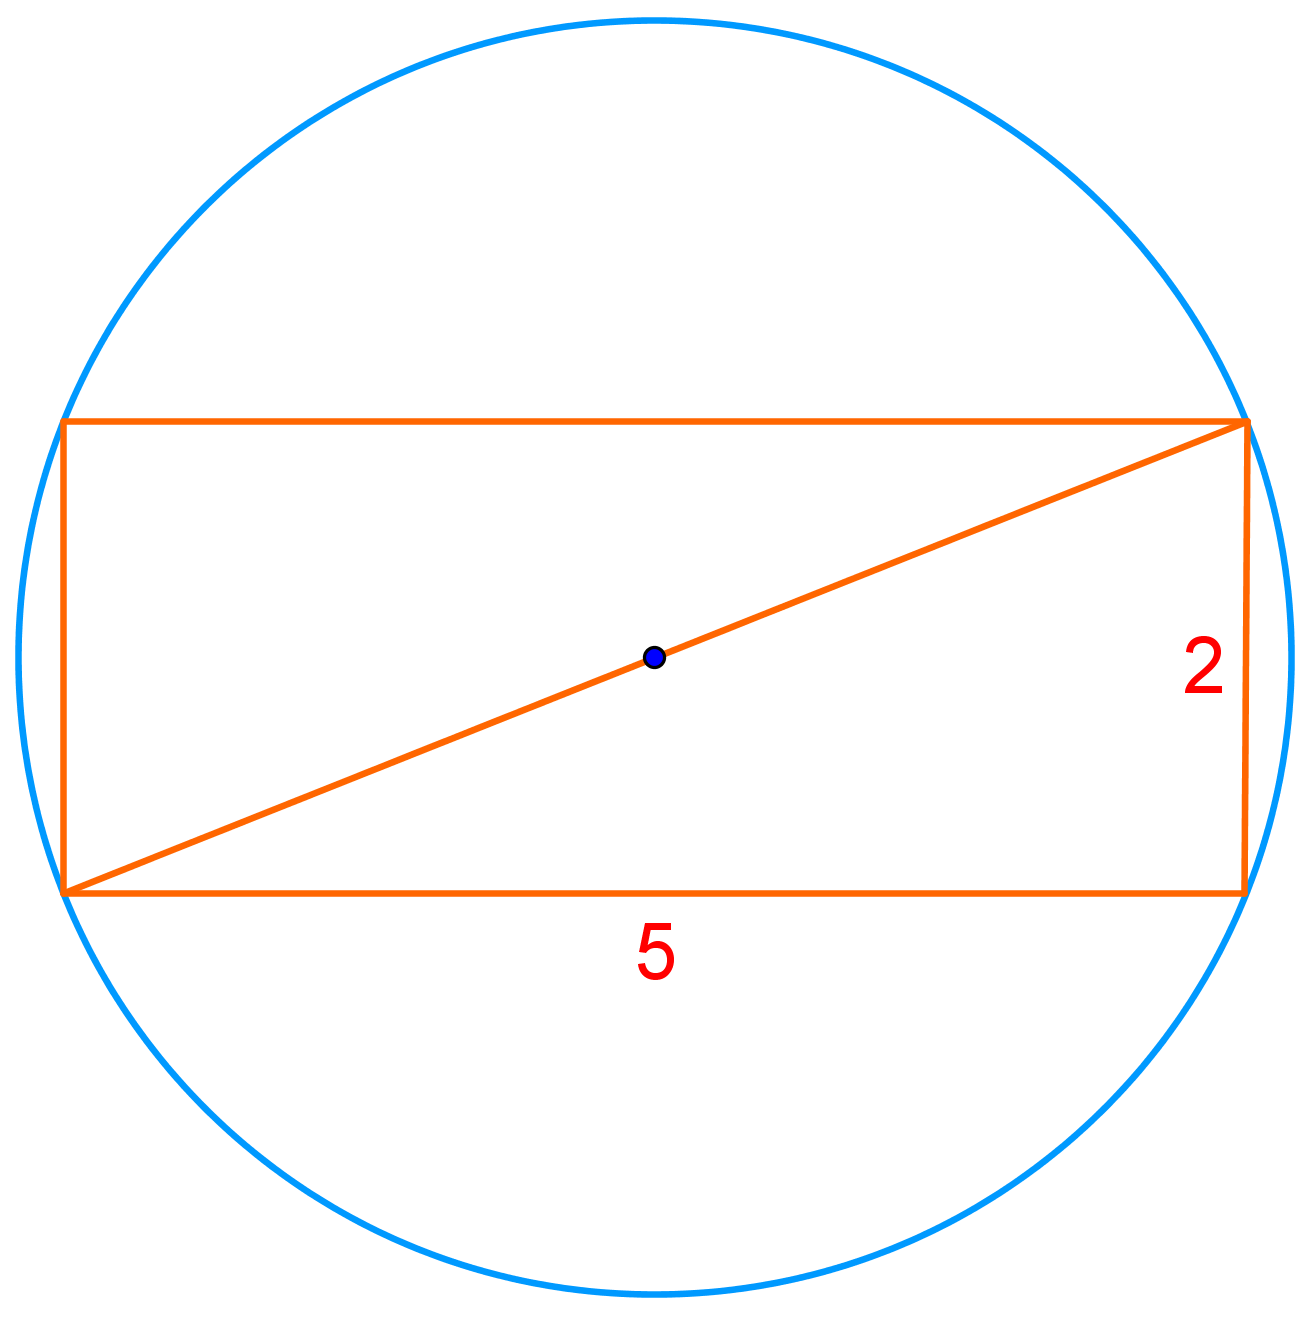 How Do You Find The Circumference Of A Circle